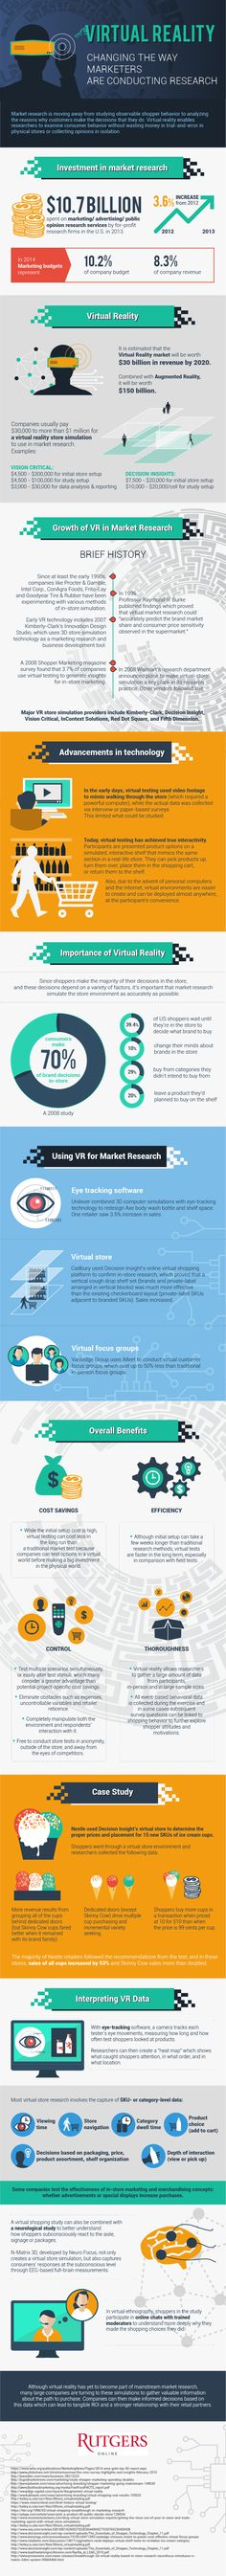 Virtual Reality: Changing the Way Marketers are Conducting Research #Infographic #VirtualReality